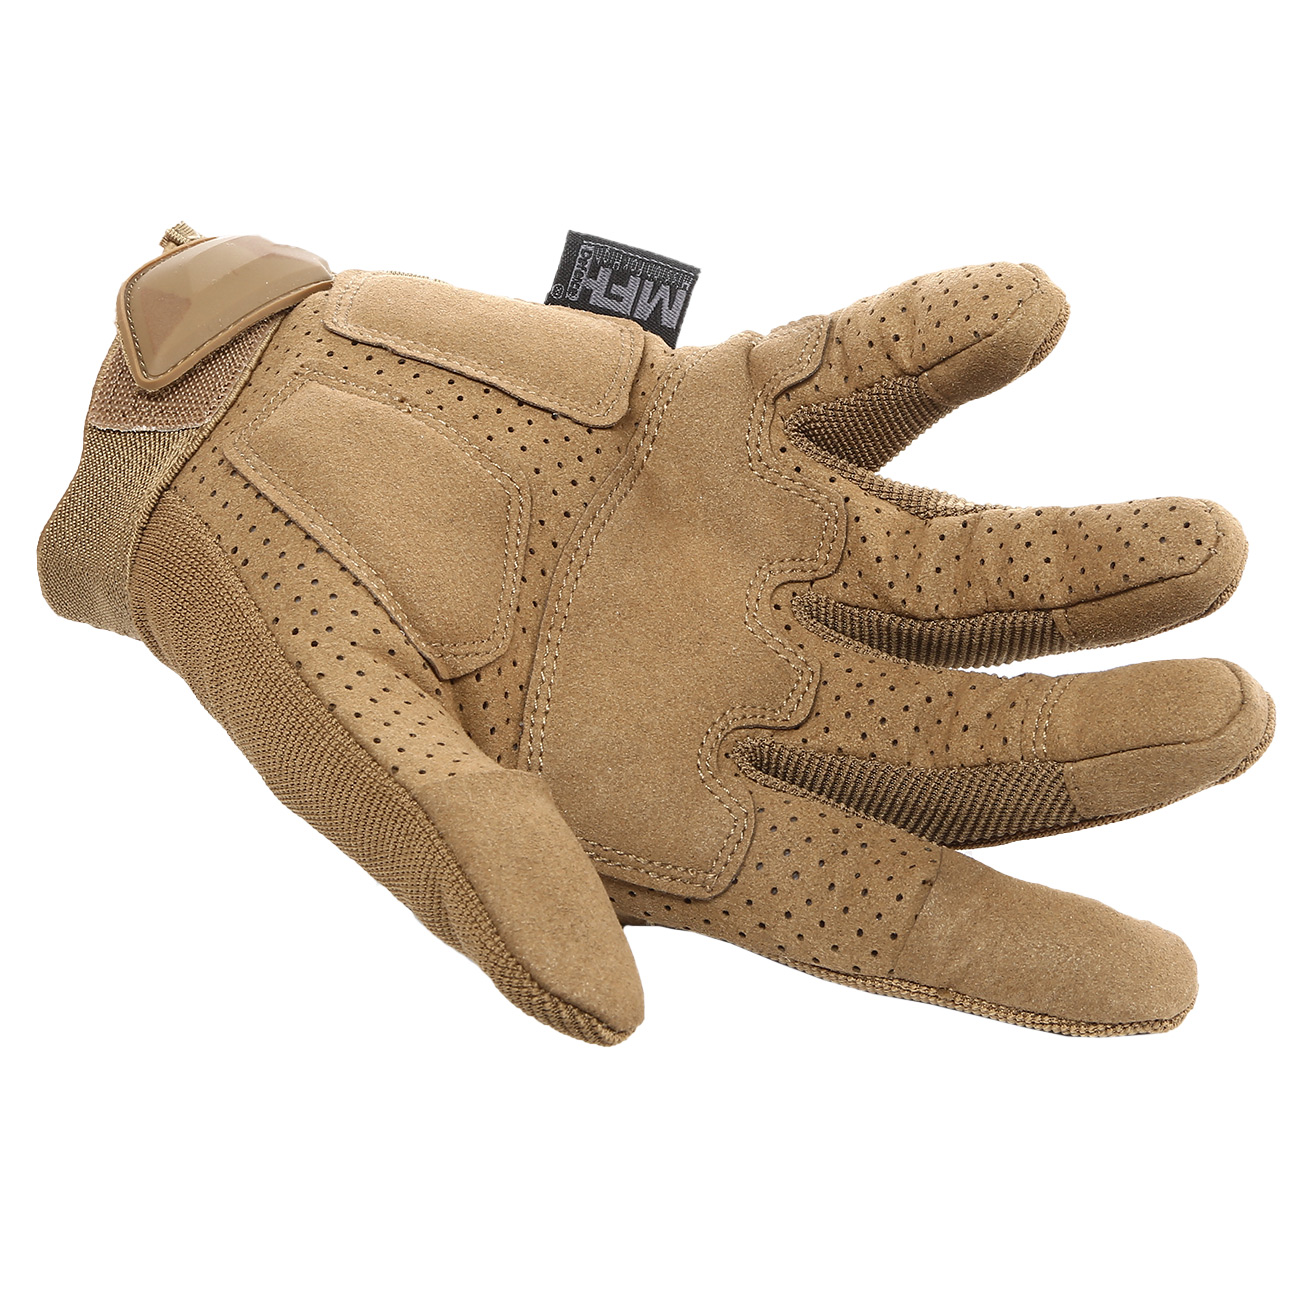 MFH Tactical Handschuhe Action coyote tan 4